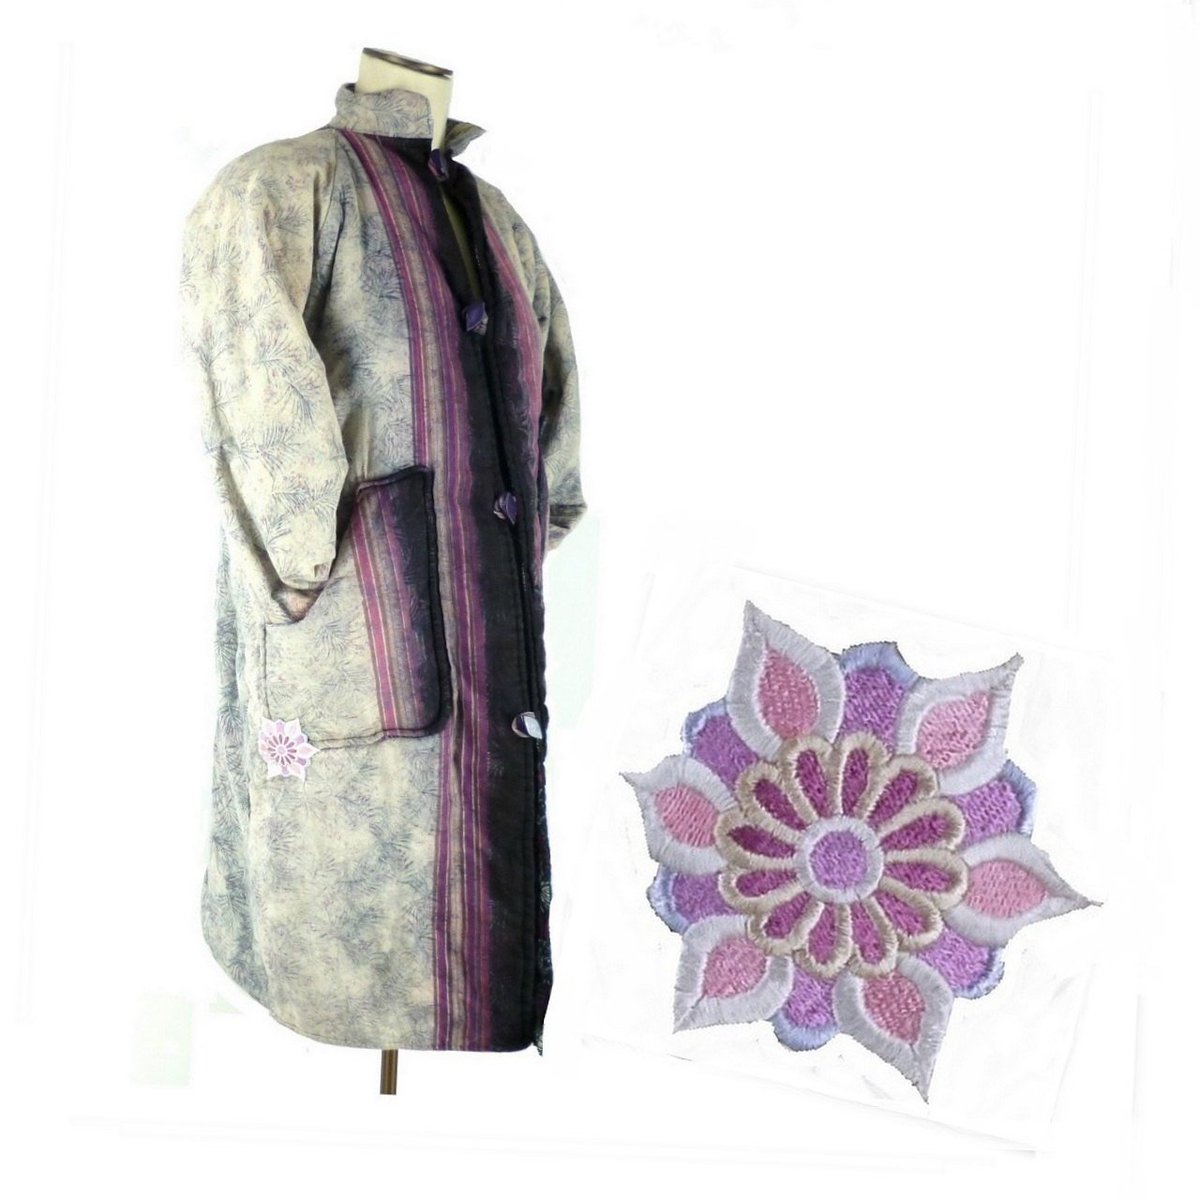 Ombre Bohemian Quilt Jacket, Feather Print with Custom Applique http://etsy.me/1WB0Yli #Etsy #DrapedBlouse pic.twitter.com/RqSHMNq8sK